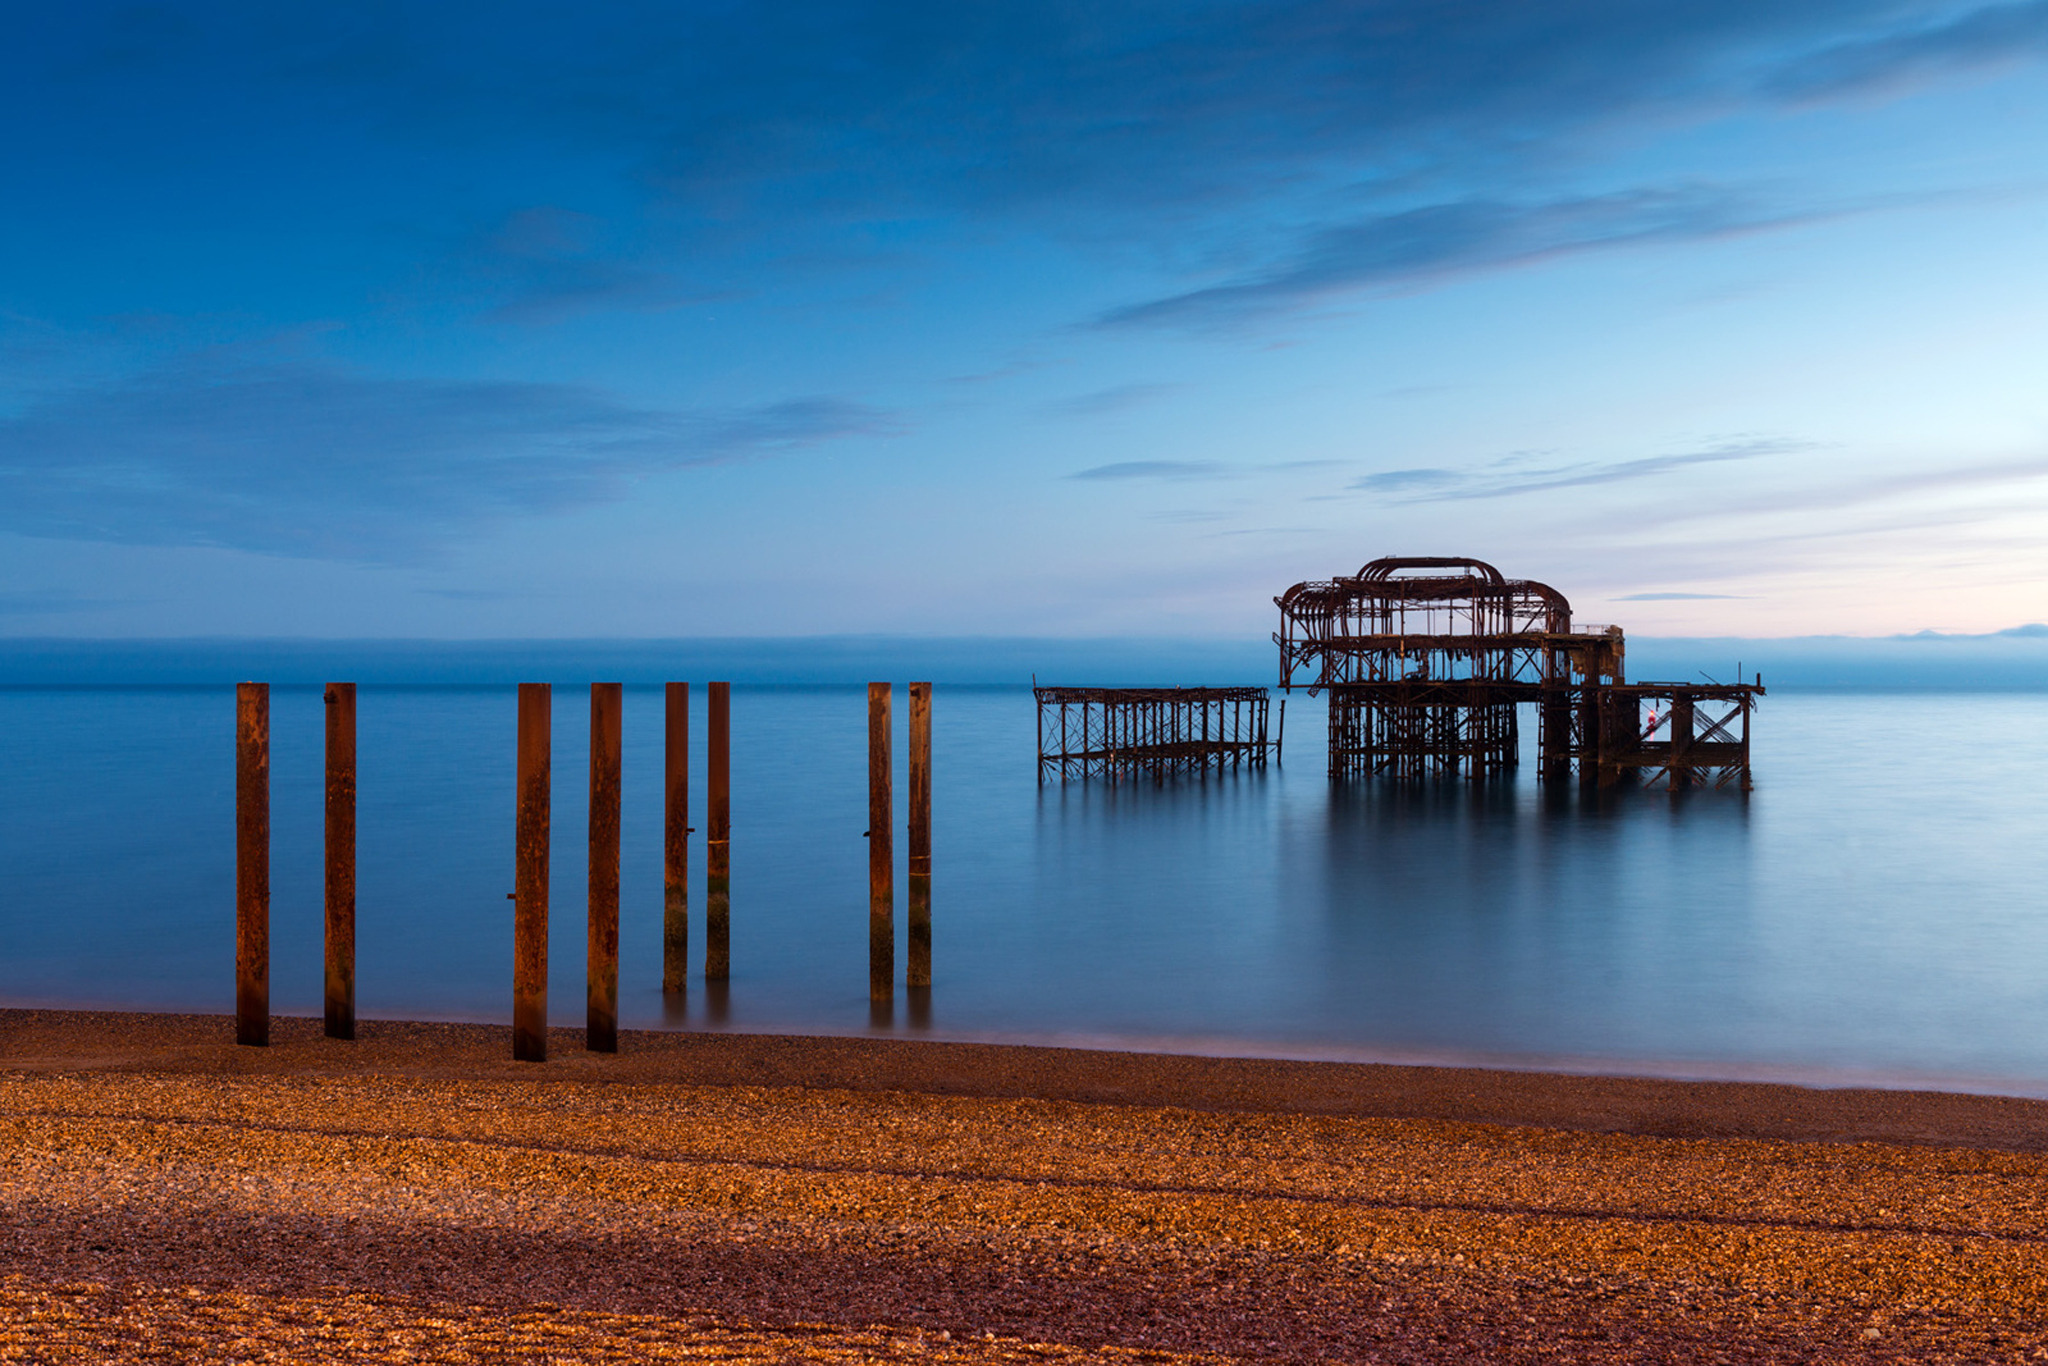 Alex_Bamford_Photography_Brighton_Horizon_dusk.jpg